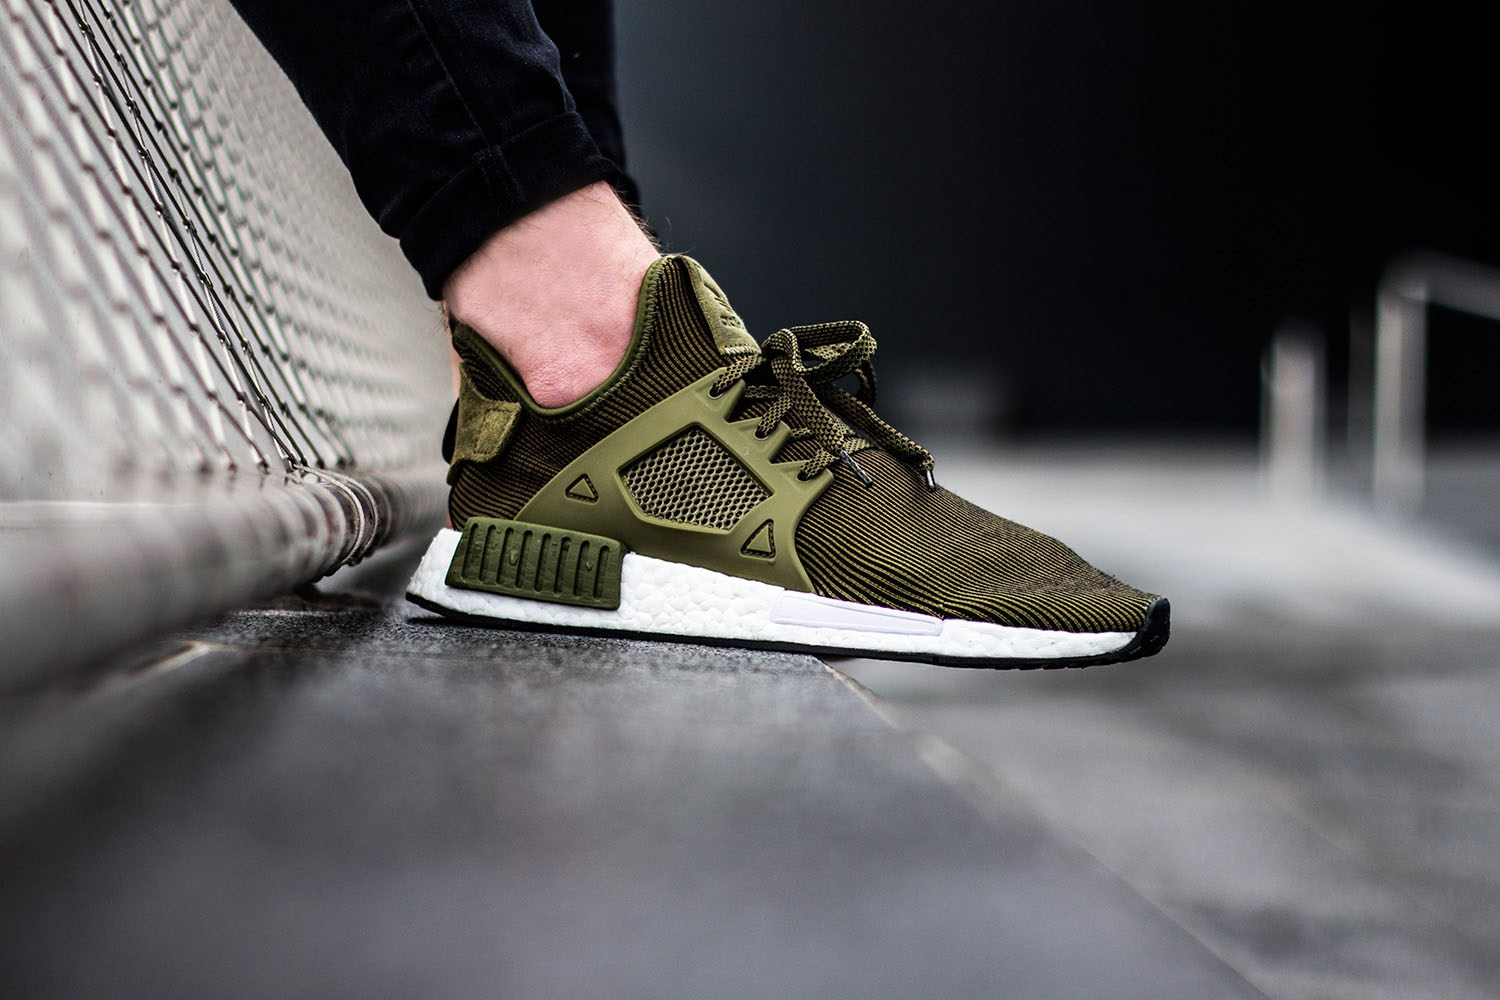 adidas originals d voile une nouvelle nmd xr1 olive trends periodical. Black Bedroom Furniture Sets. Home Design Ideas